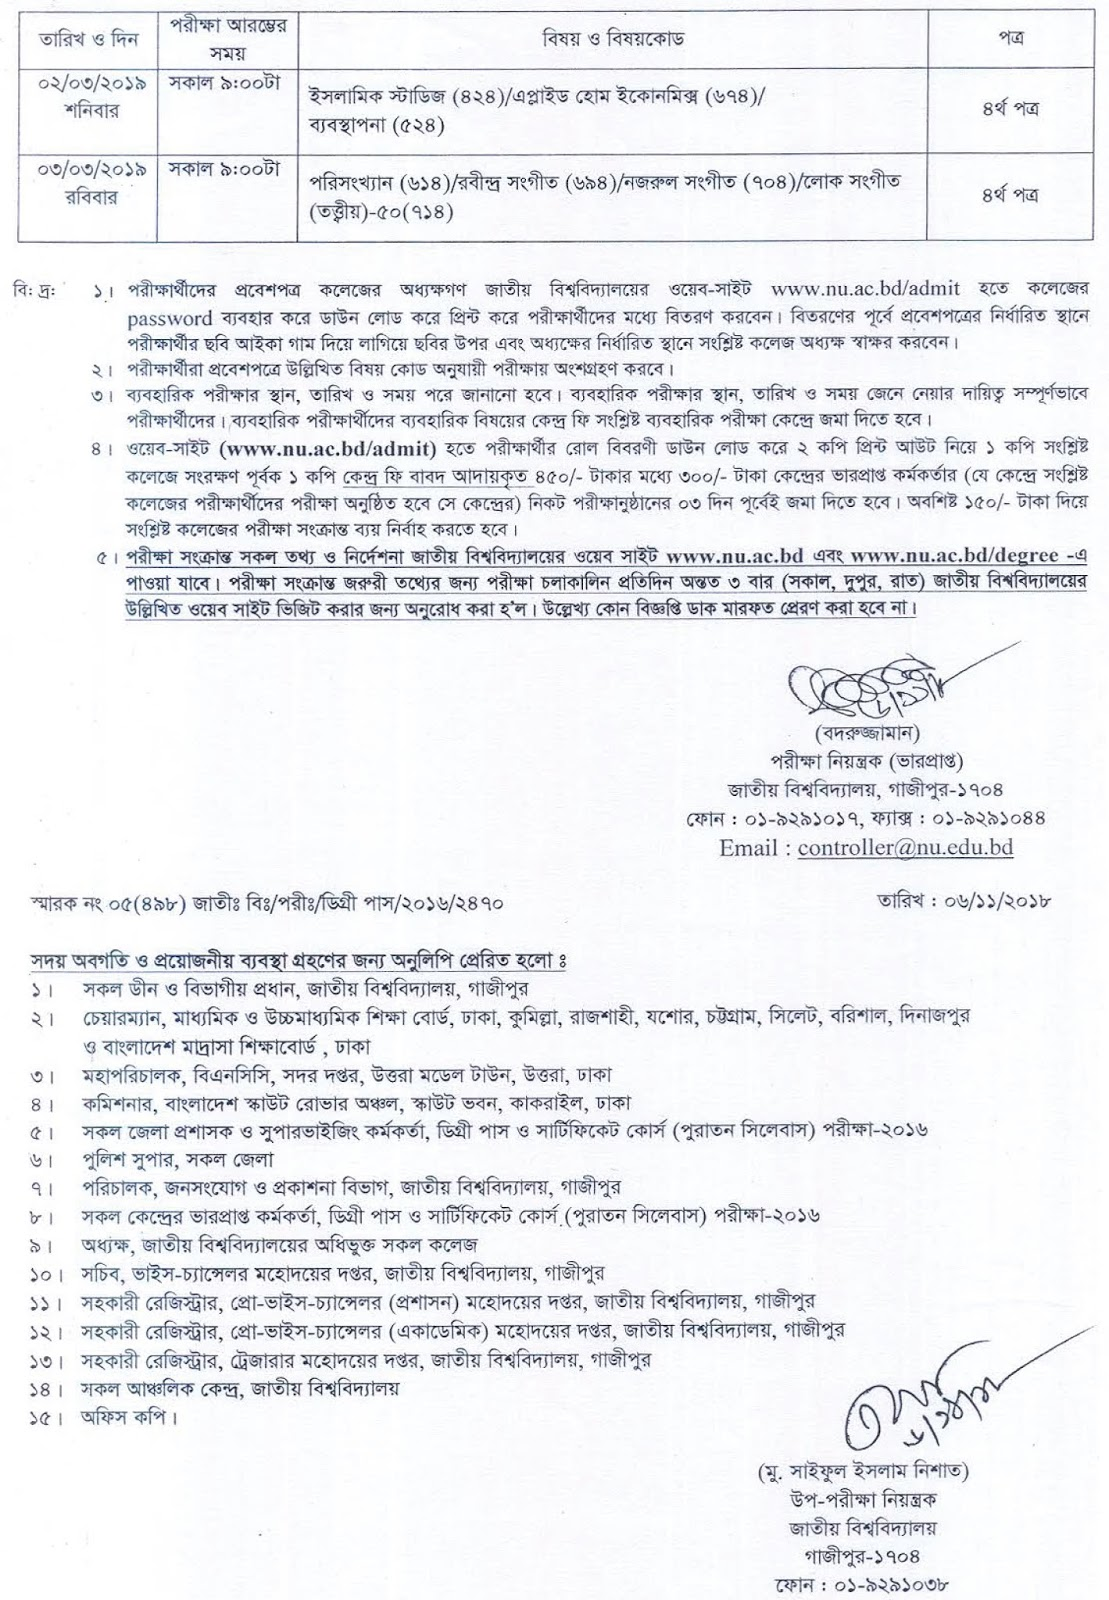 National University Degree Pass Course Exam 3rd Year Routine 2018 [Session 2014-15] Regular-Irregular